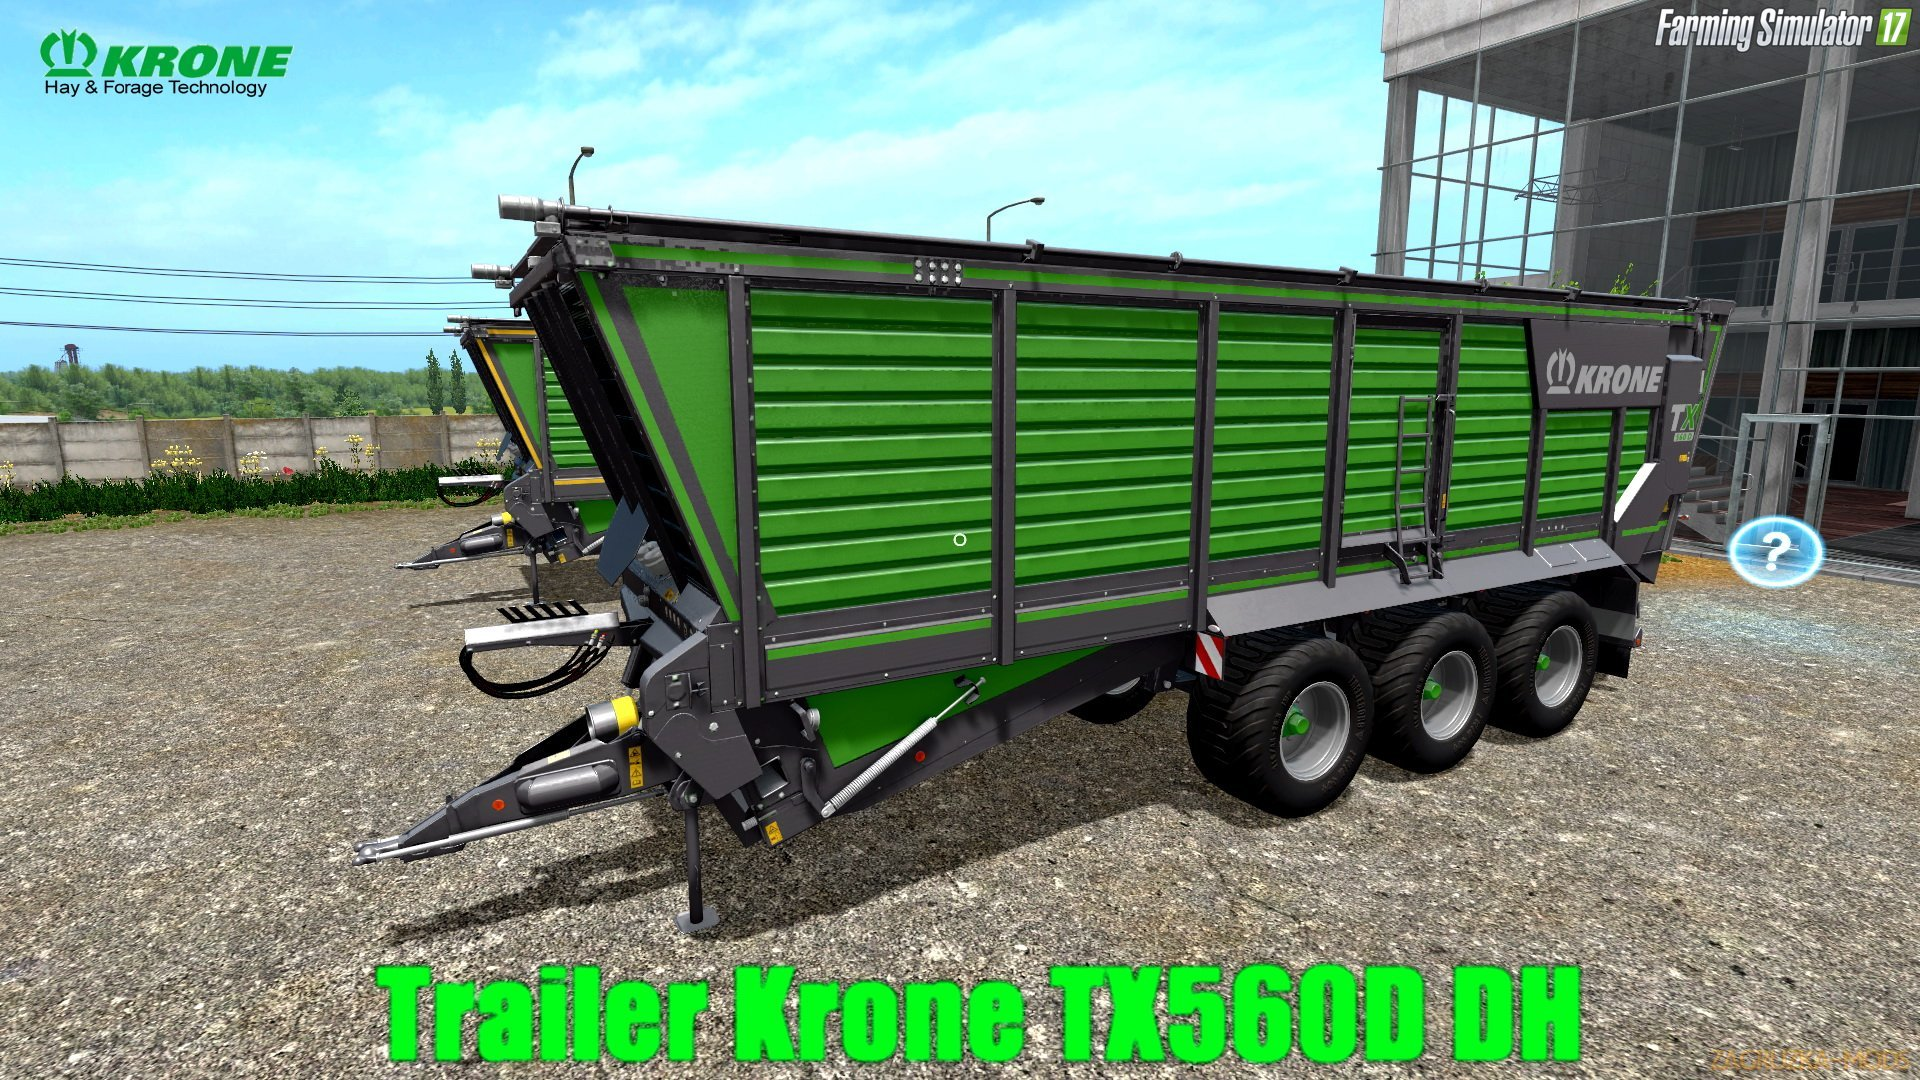 Trailer Krone TX560D DH v1.0 for FS 17